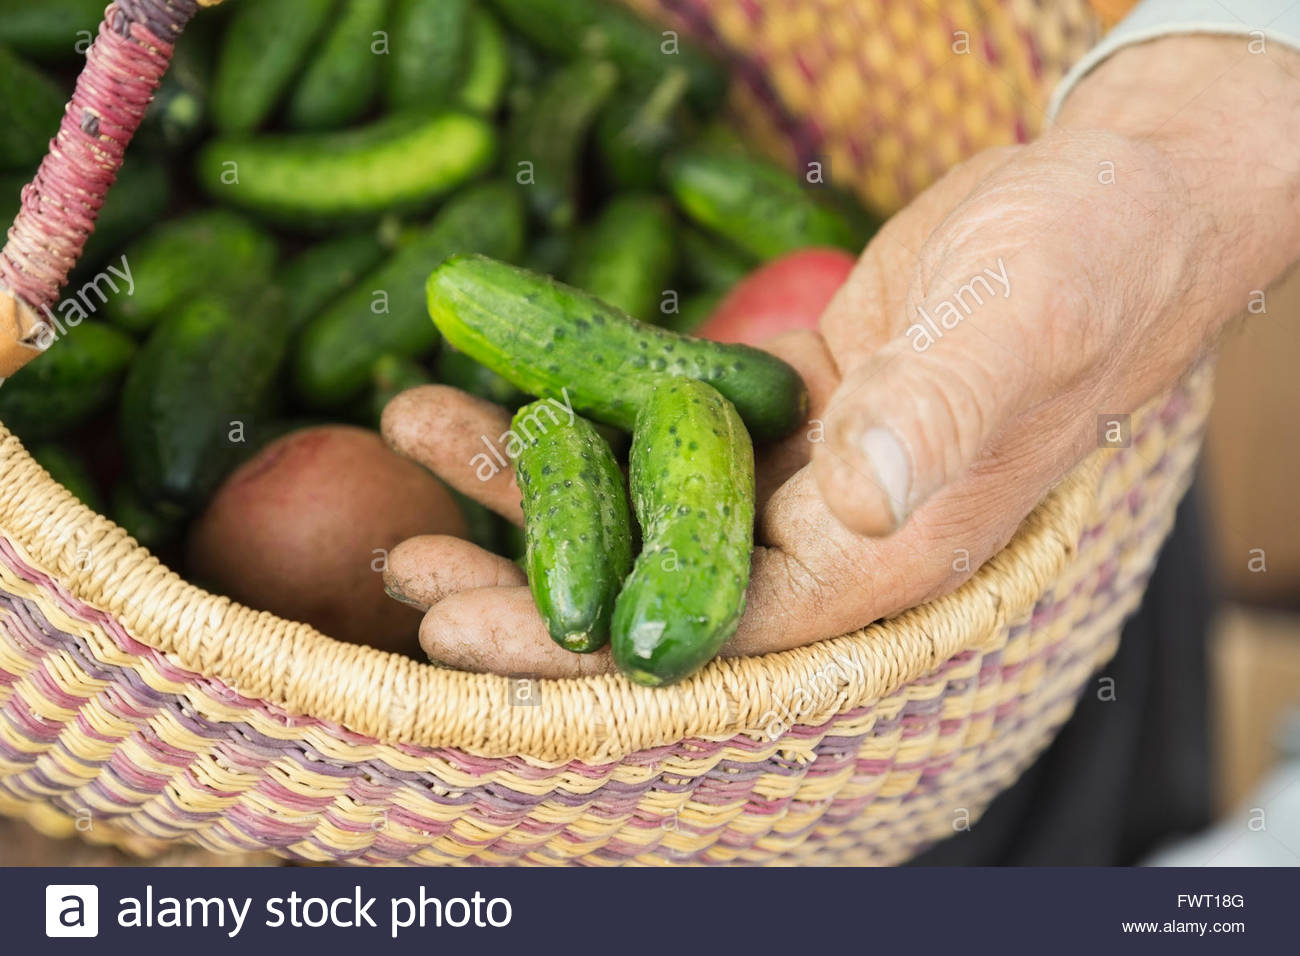 Mans hands holding fresh pickling cucumbers - Stock Image